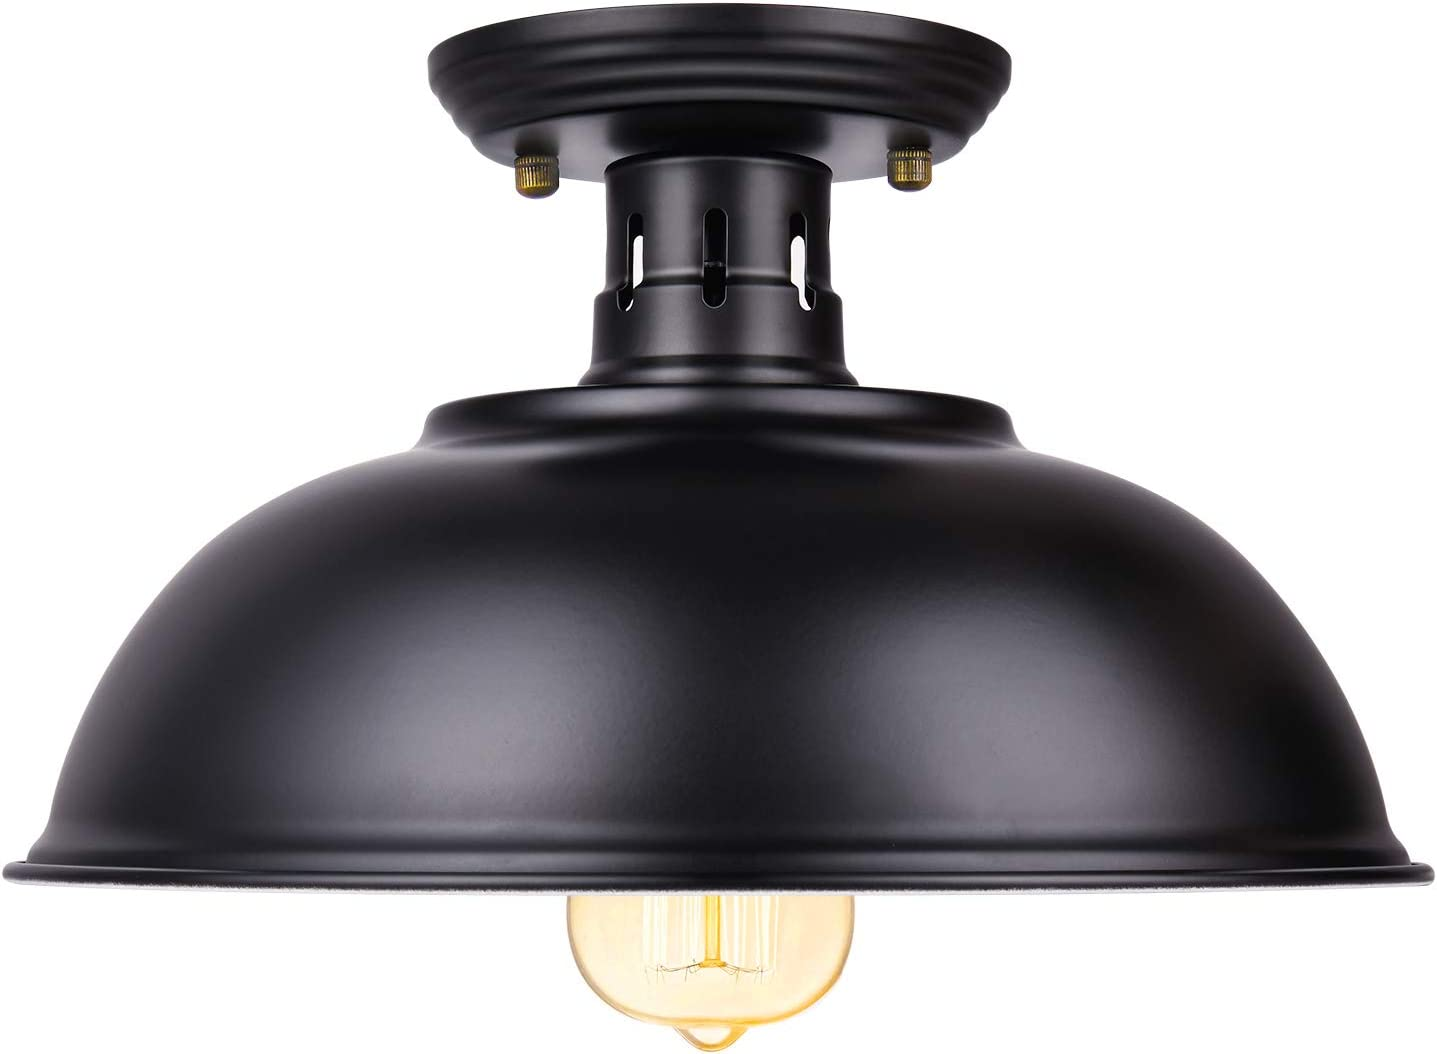 Vintage Rustic Semi Flush Mount Ceiling Light, Farmhouse Black Ceiling Light Fixture E26 Base, Industrial Ceiling Lights for Hallway Stairway Foyer Kitchen Porch Entryway